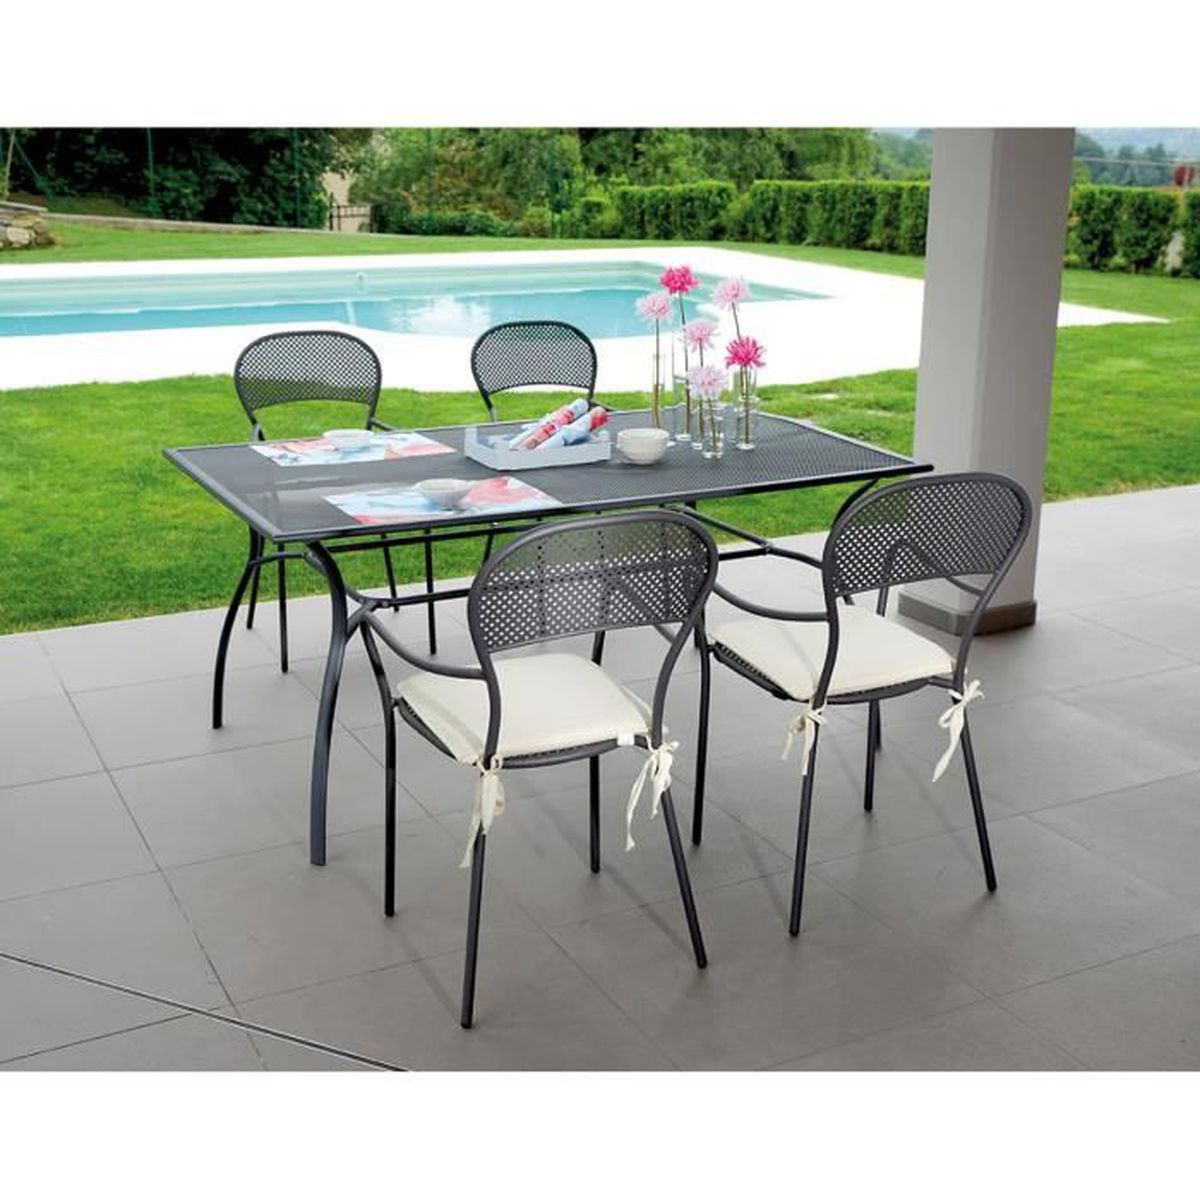 Ensemble de jardin table rectangulaire 4 chaises coloris gris h 73 x l 16 - Ensemble table de jardin ...